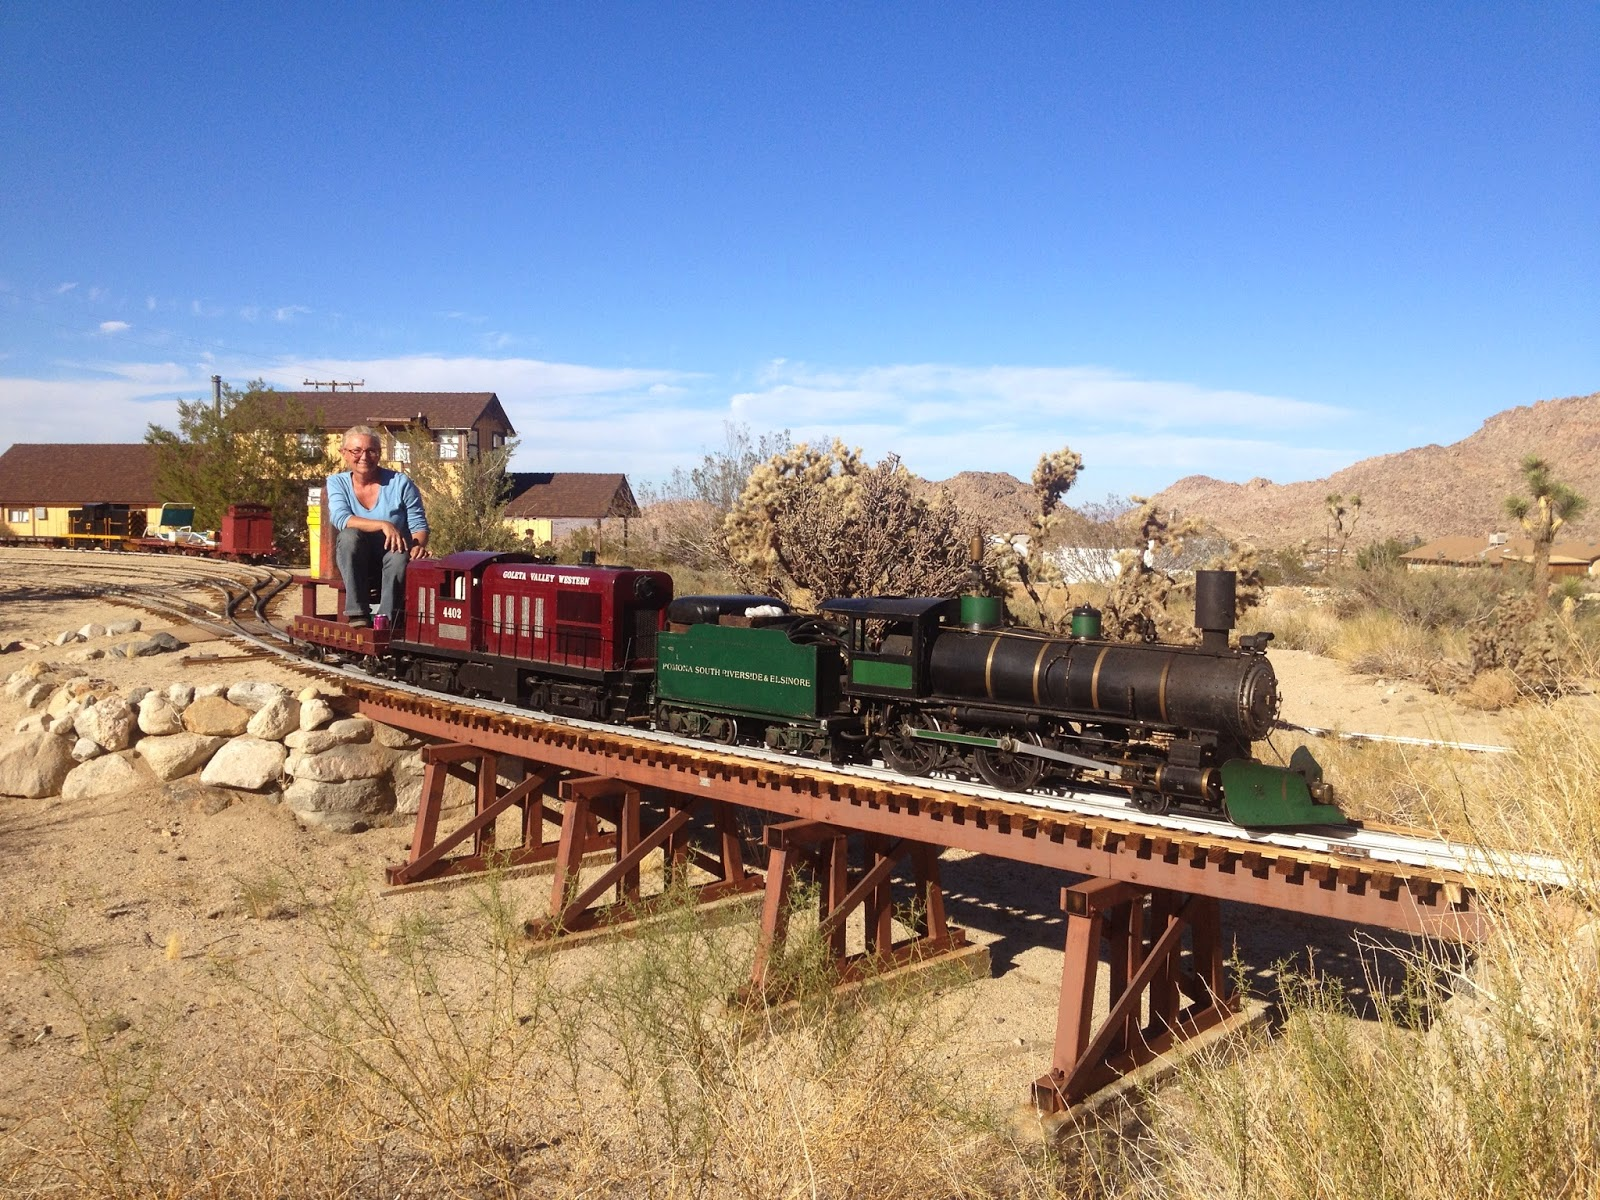 joshua tree so railroad museum u0026 narrow gauge railroad desert